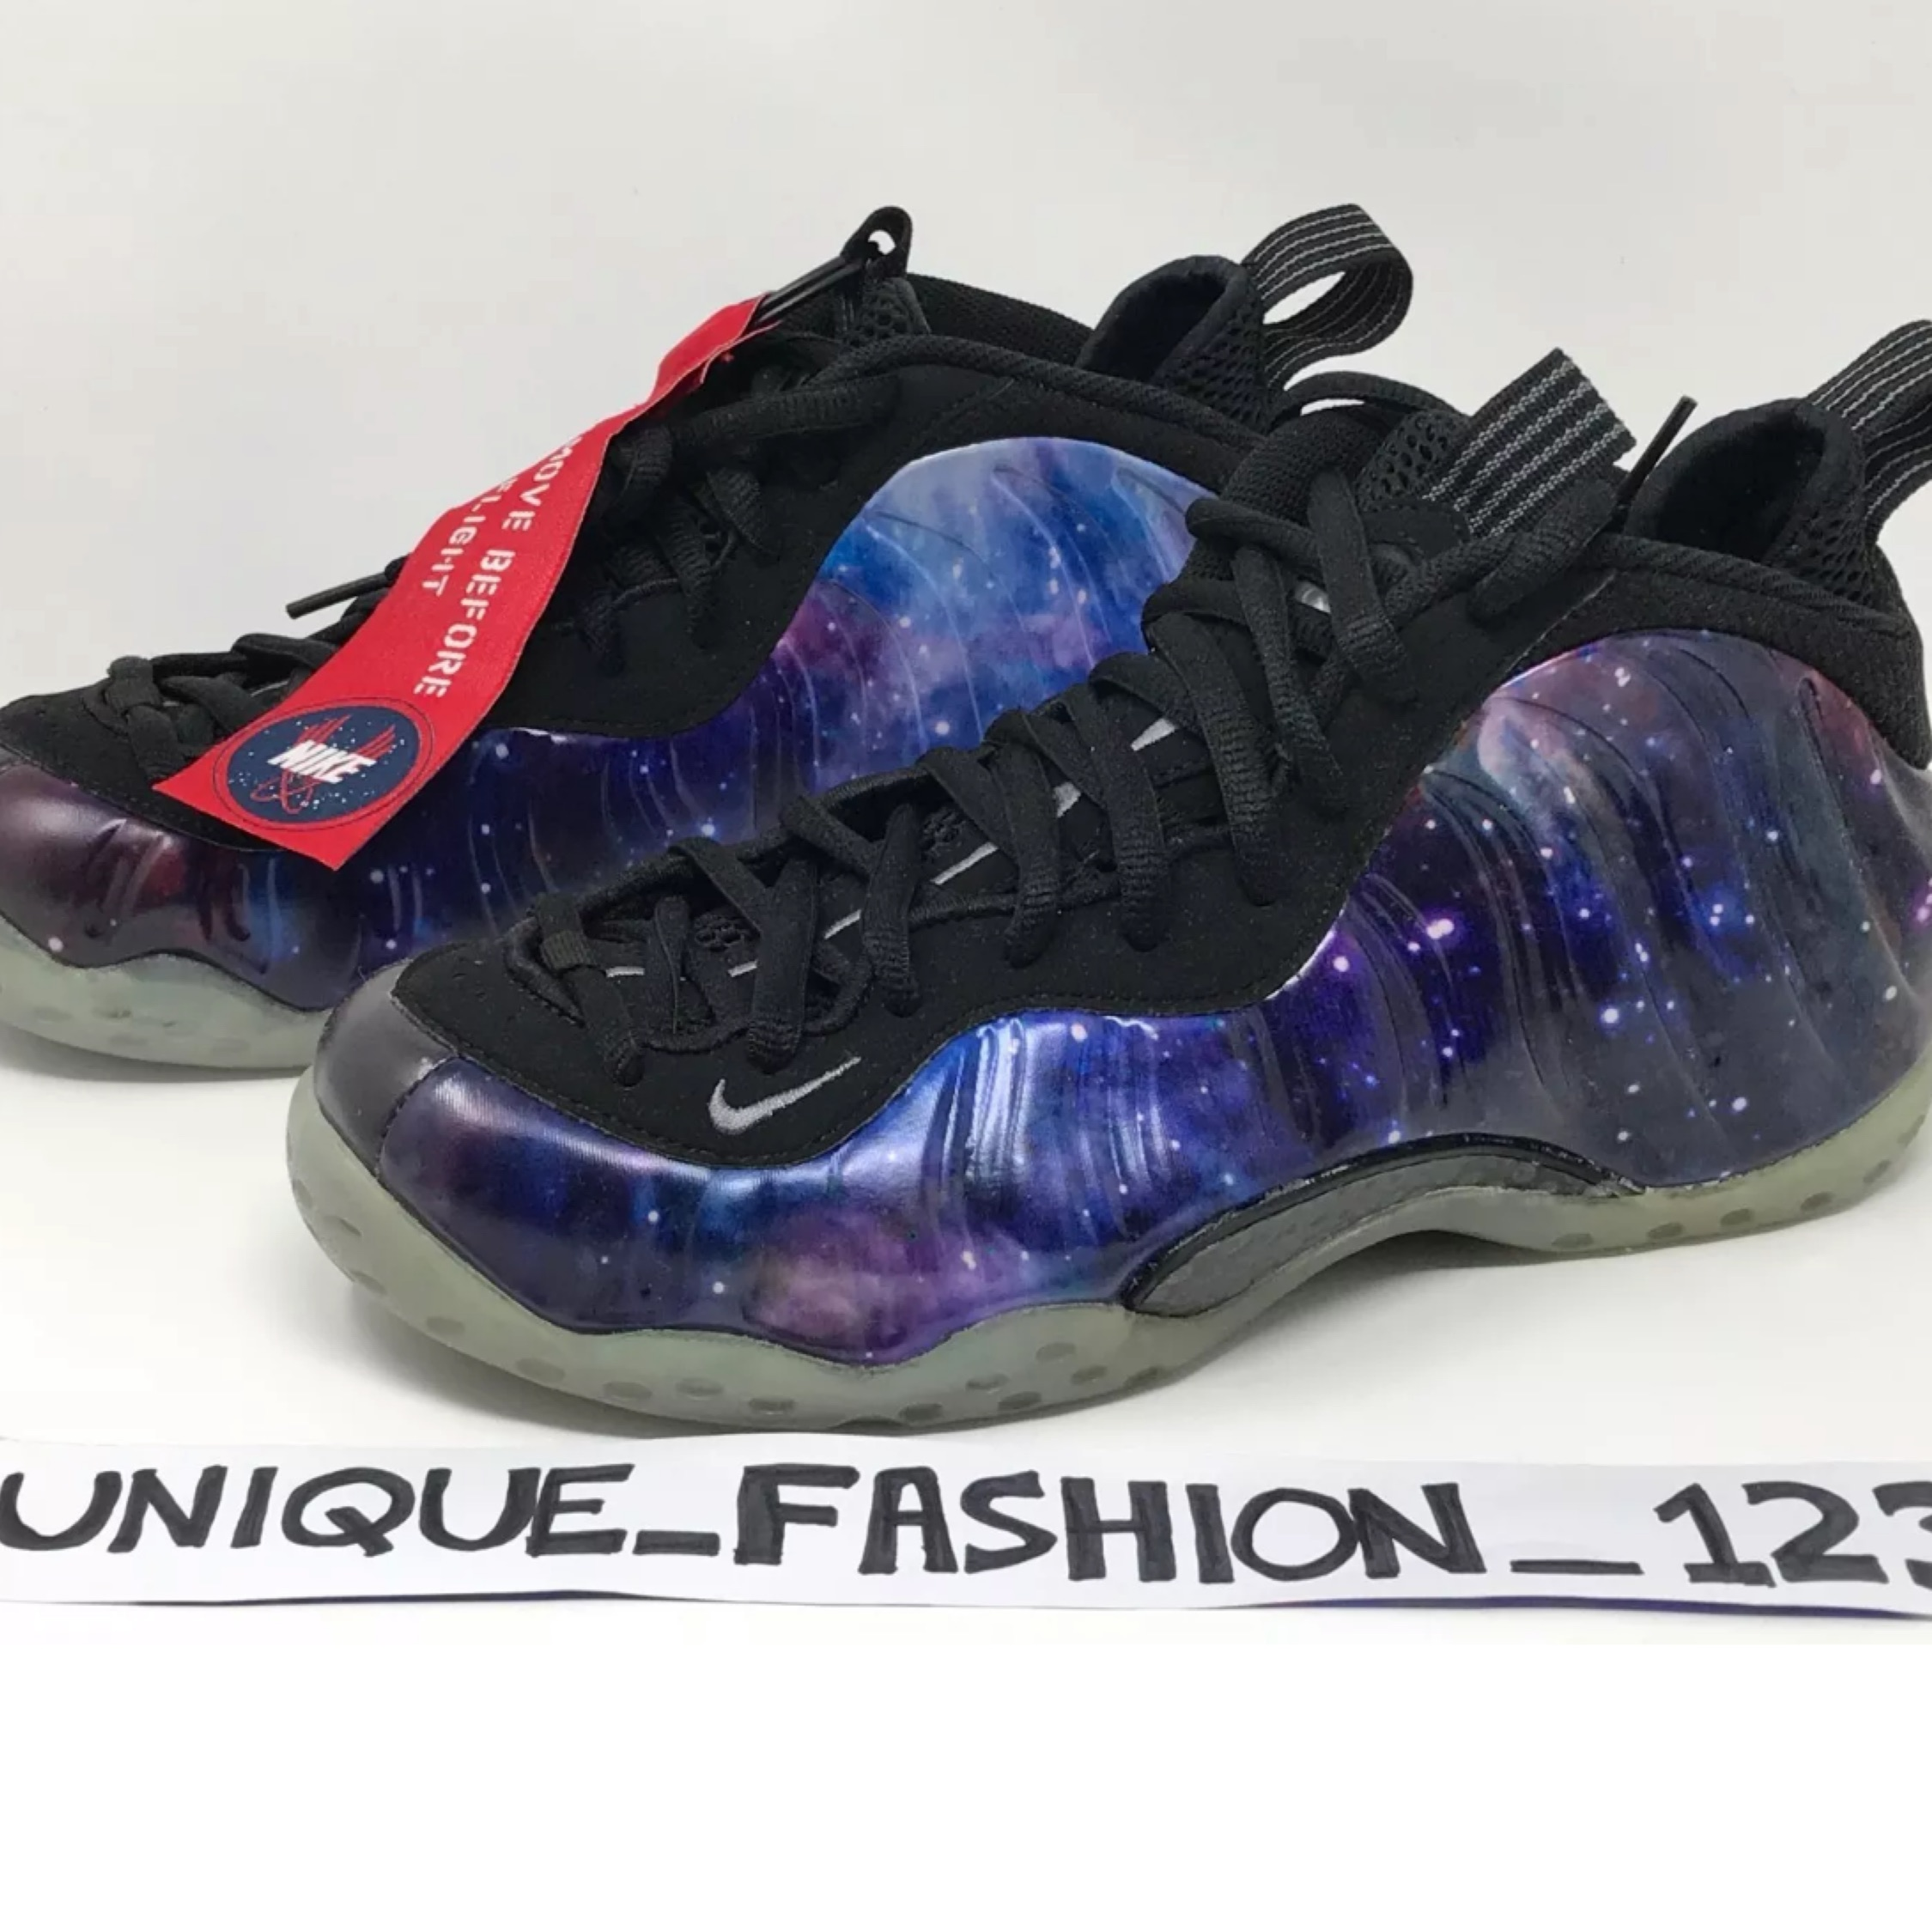 Nike Air Foamposite One Red Blue Online Price: $ 104.15 ...